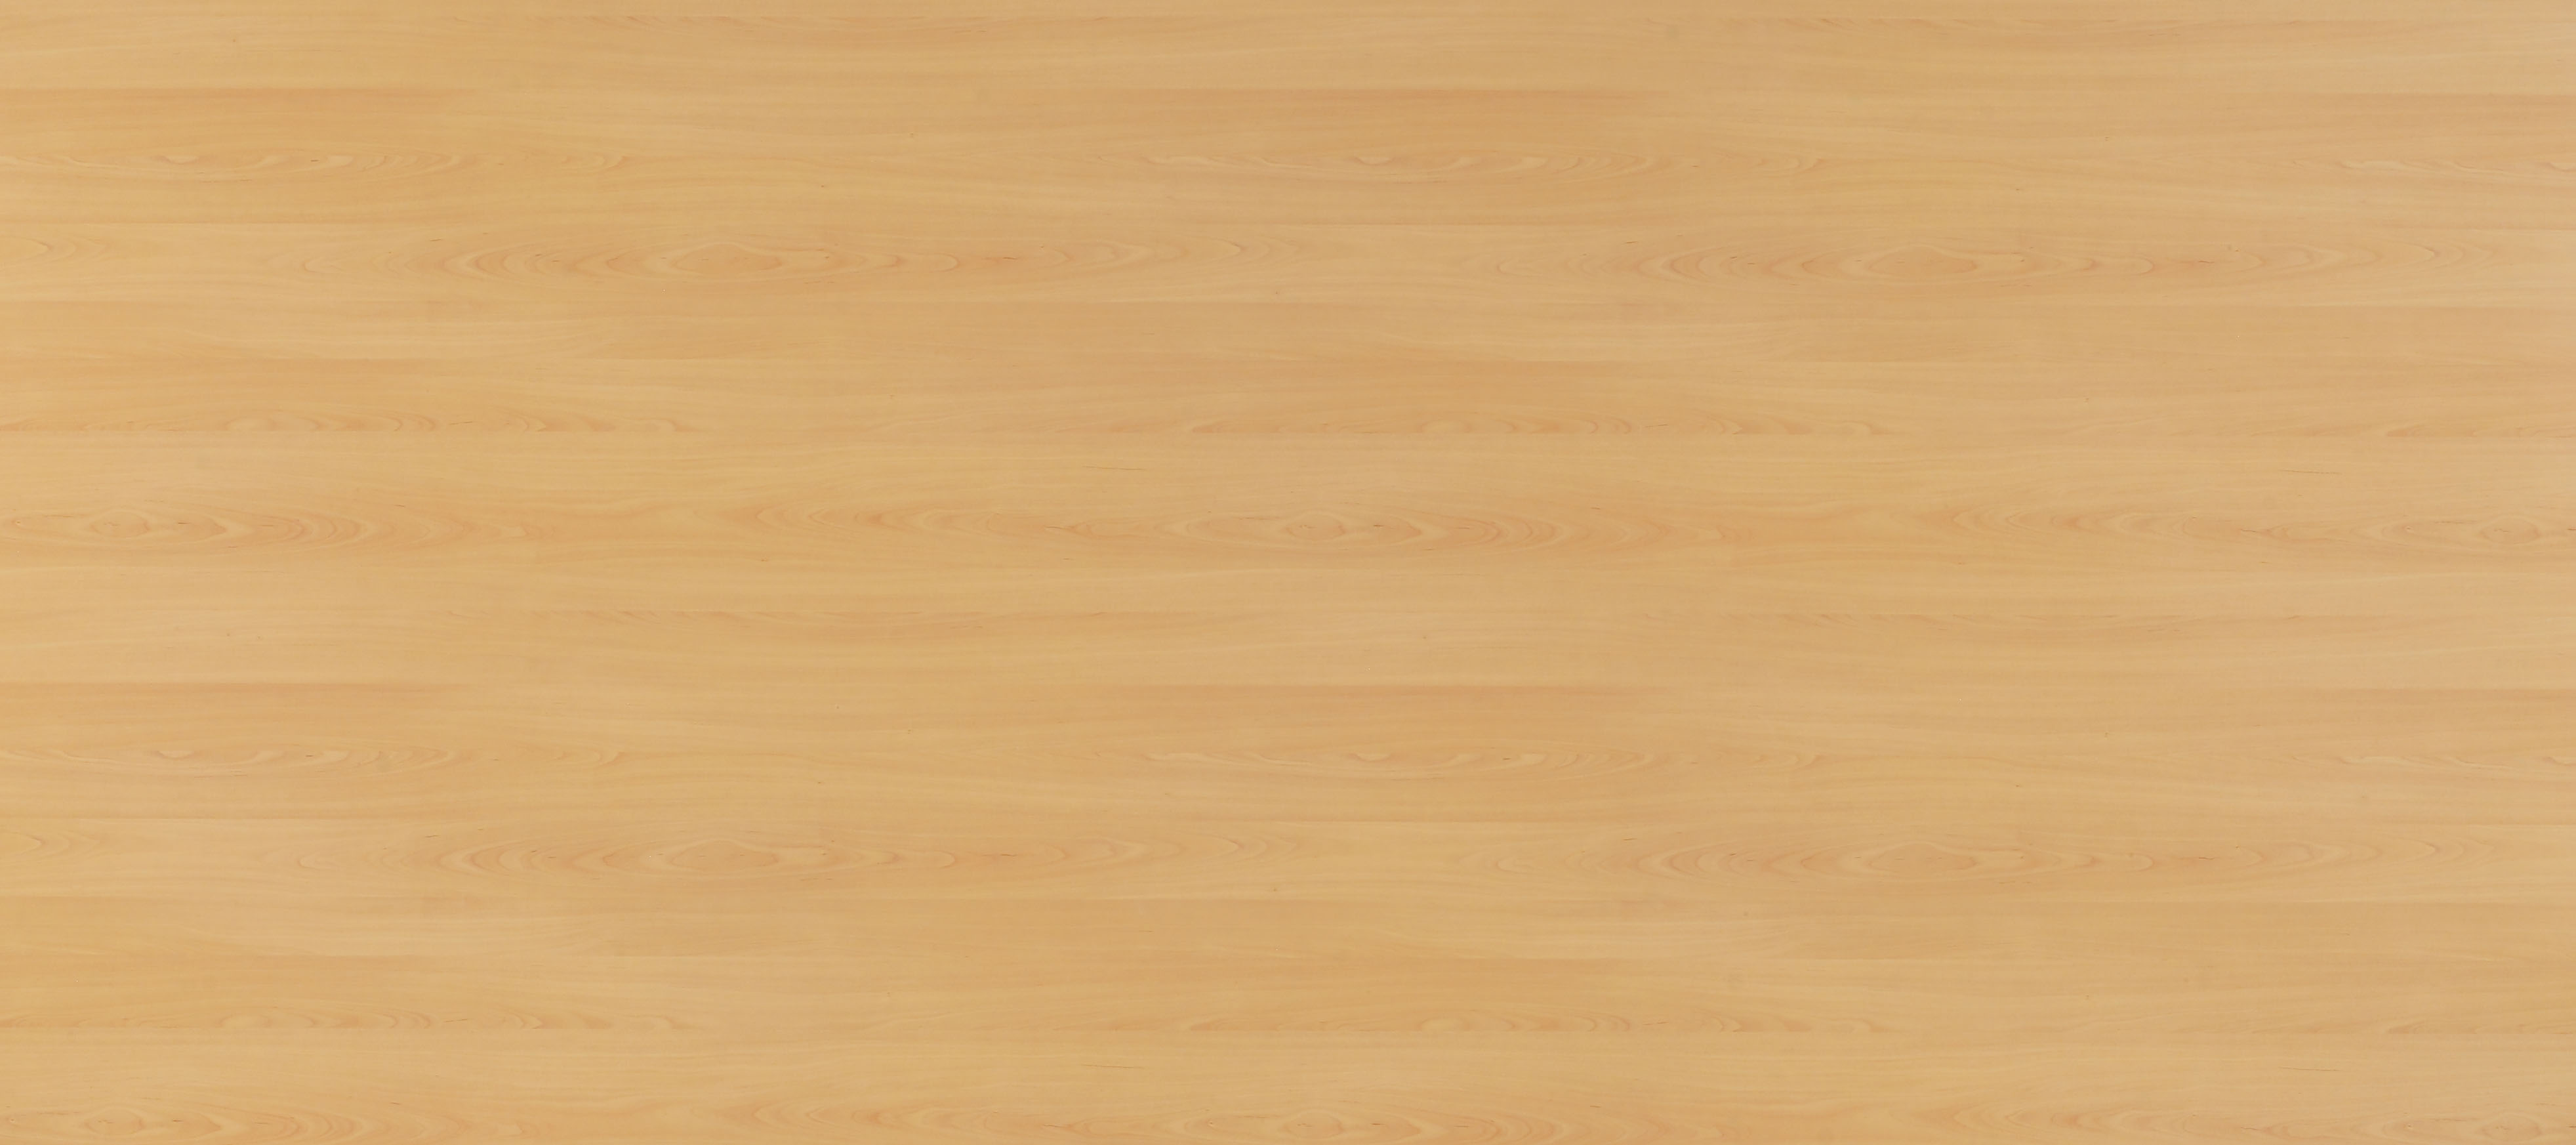 Texture Wood Free Download Photo Download Wood Texture